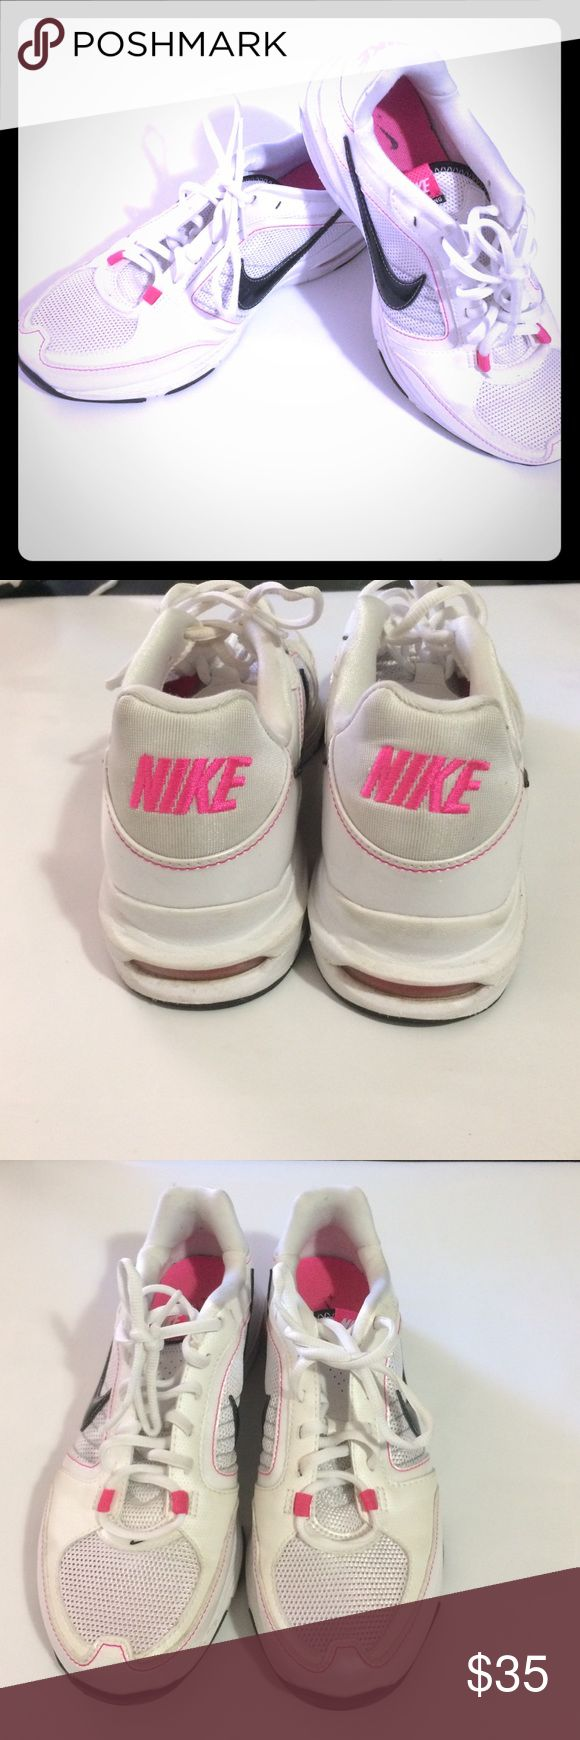 Nike Tennis Shoes Nike tennis shoes worn a few times, decent condition see pictures Nike Shoes Athletic Shoes